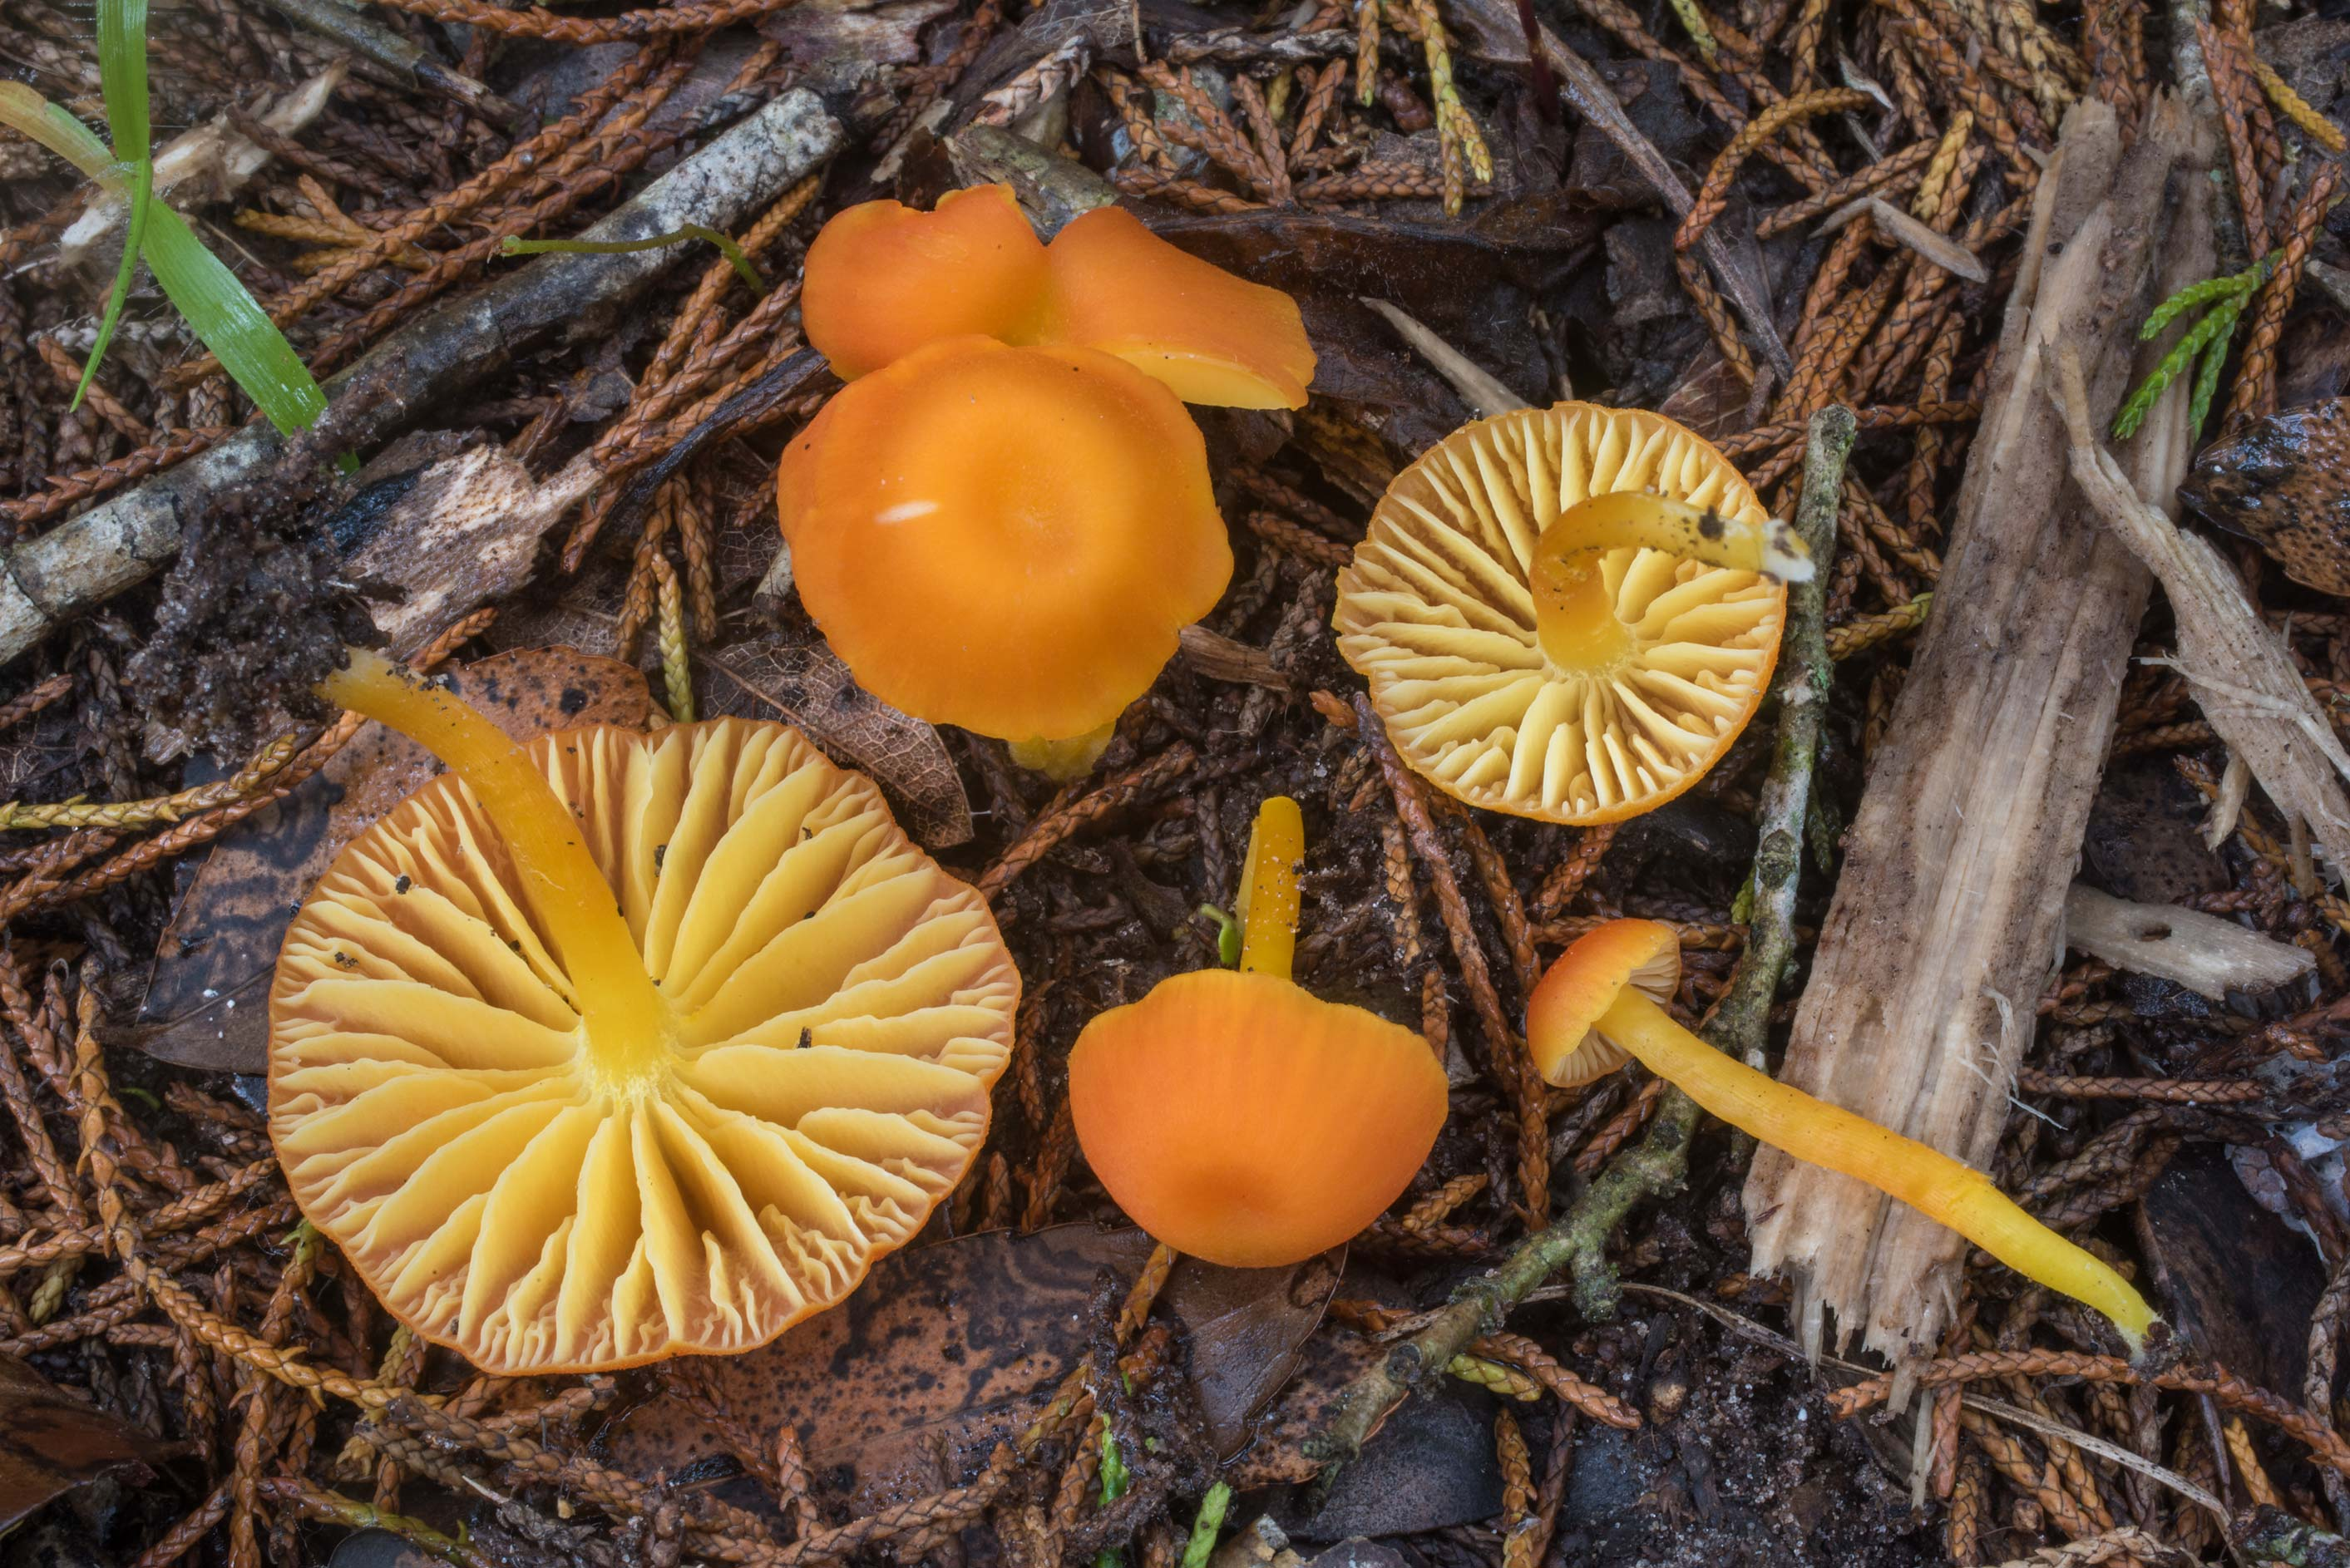 Vermilion waxcap mushrooms (Hygrocybe miniata) in Lick Creek Park. College Station, Texas